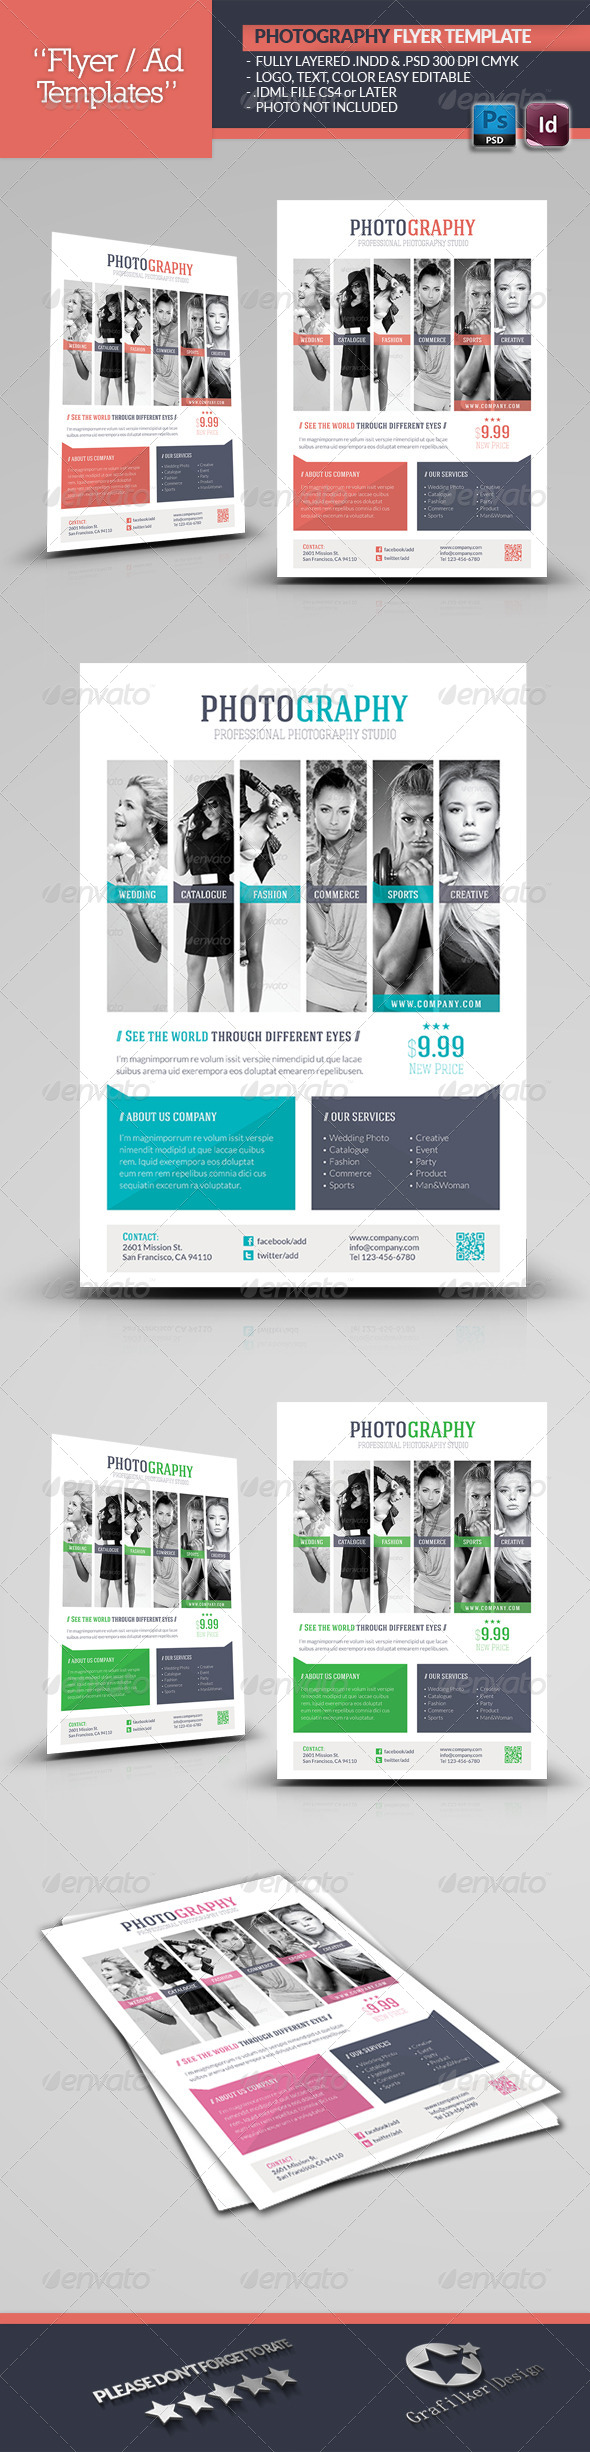 GraphicRiver Photography Flyer Template 5456631